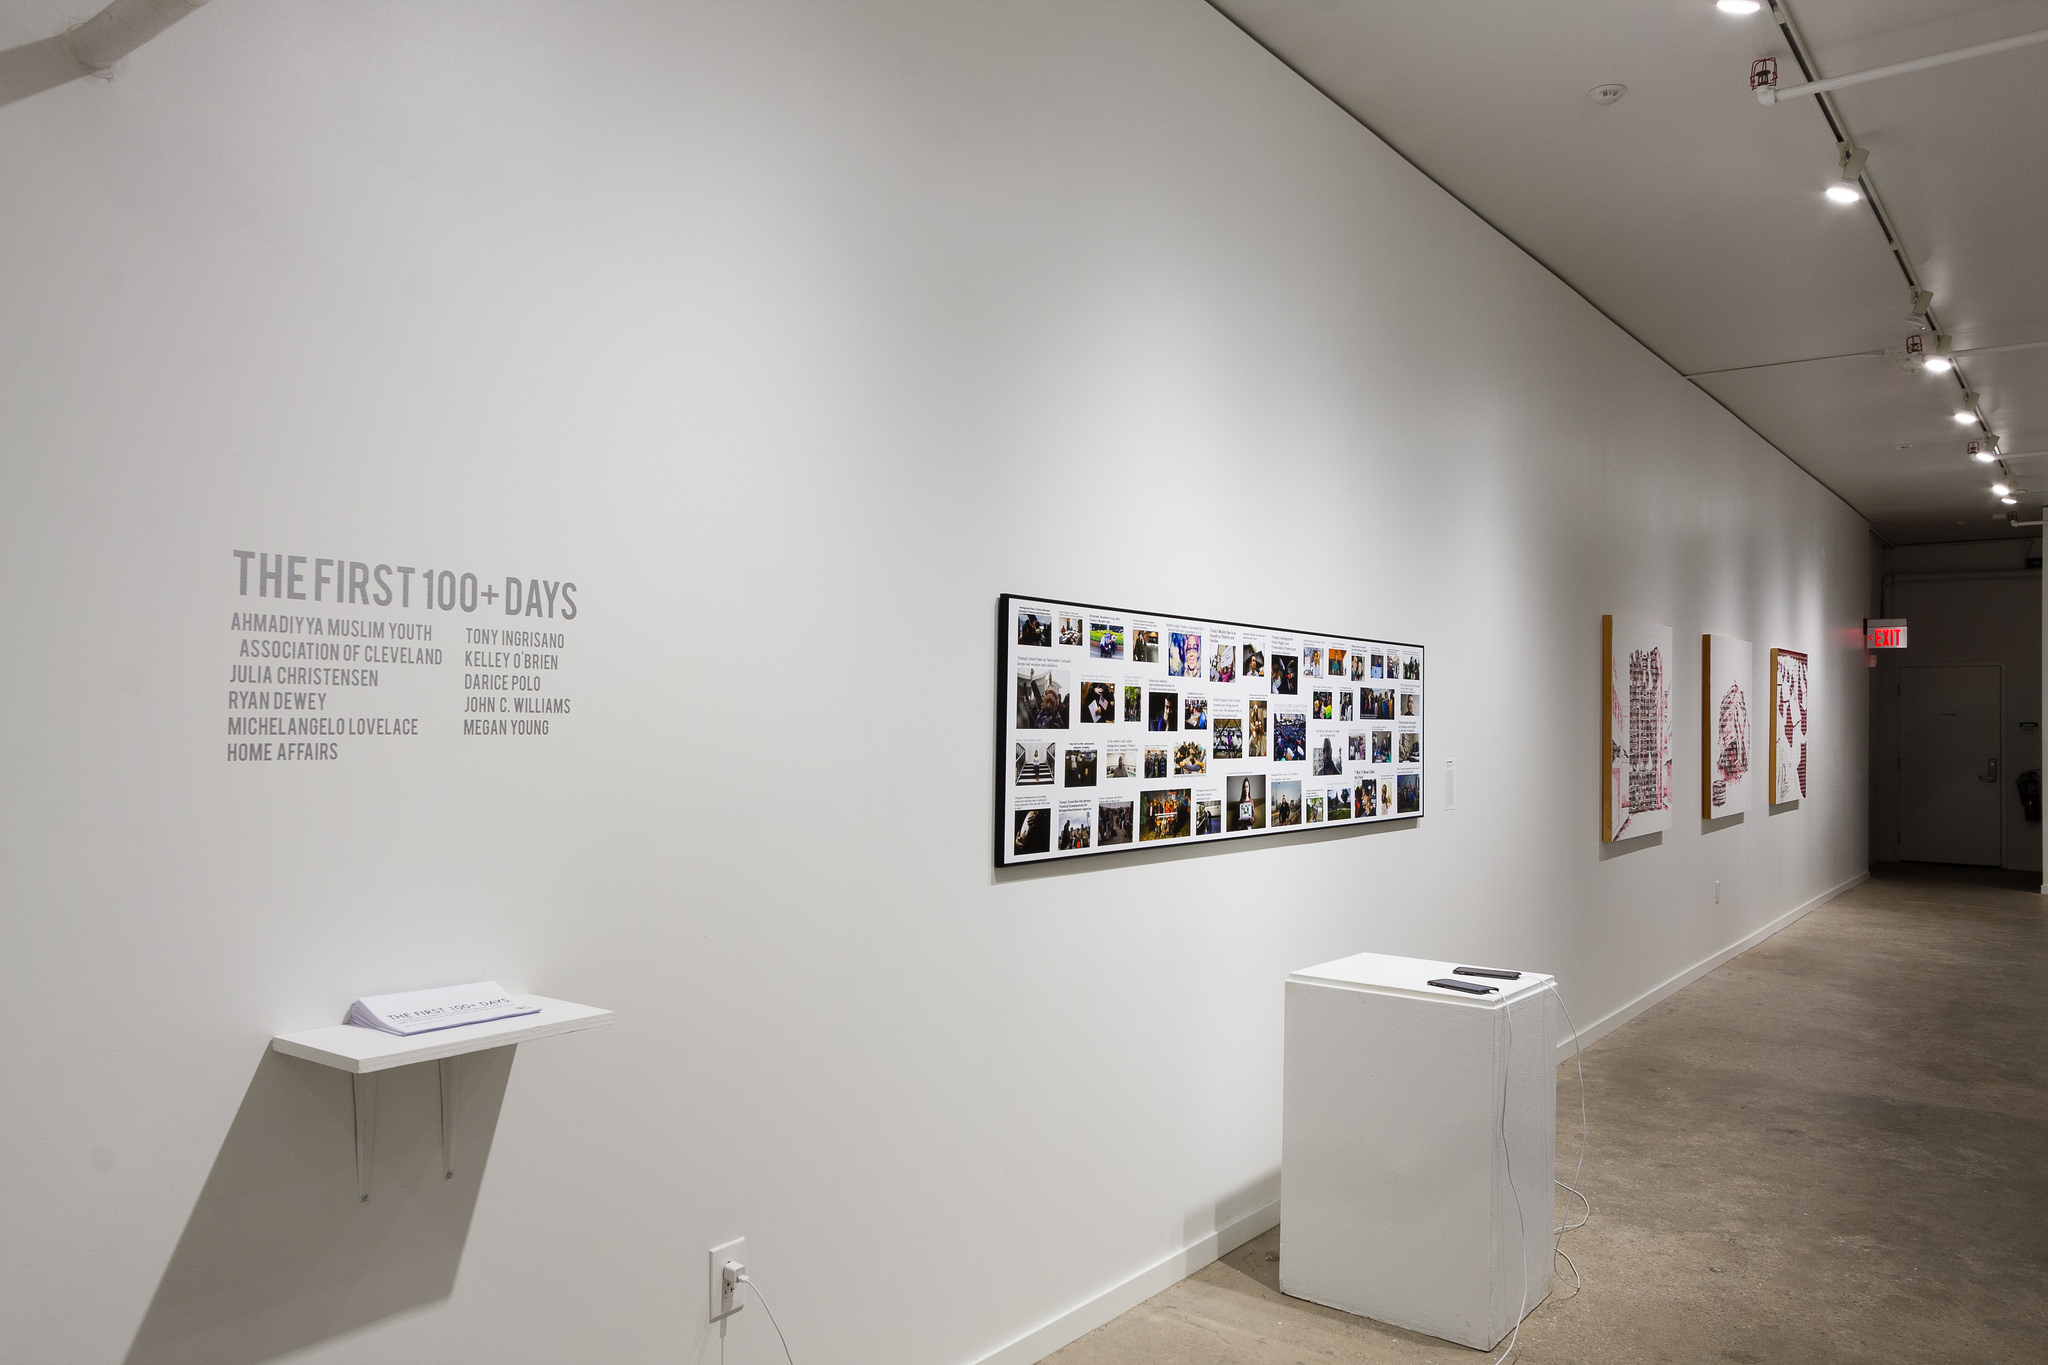 Installation view.Image by Jerry Mann courtesy of SPACES.